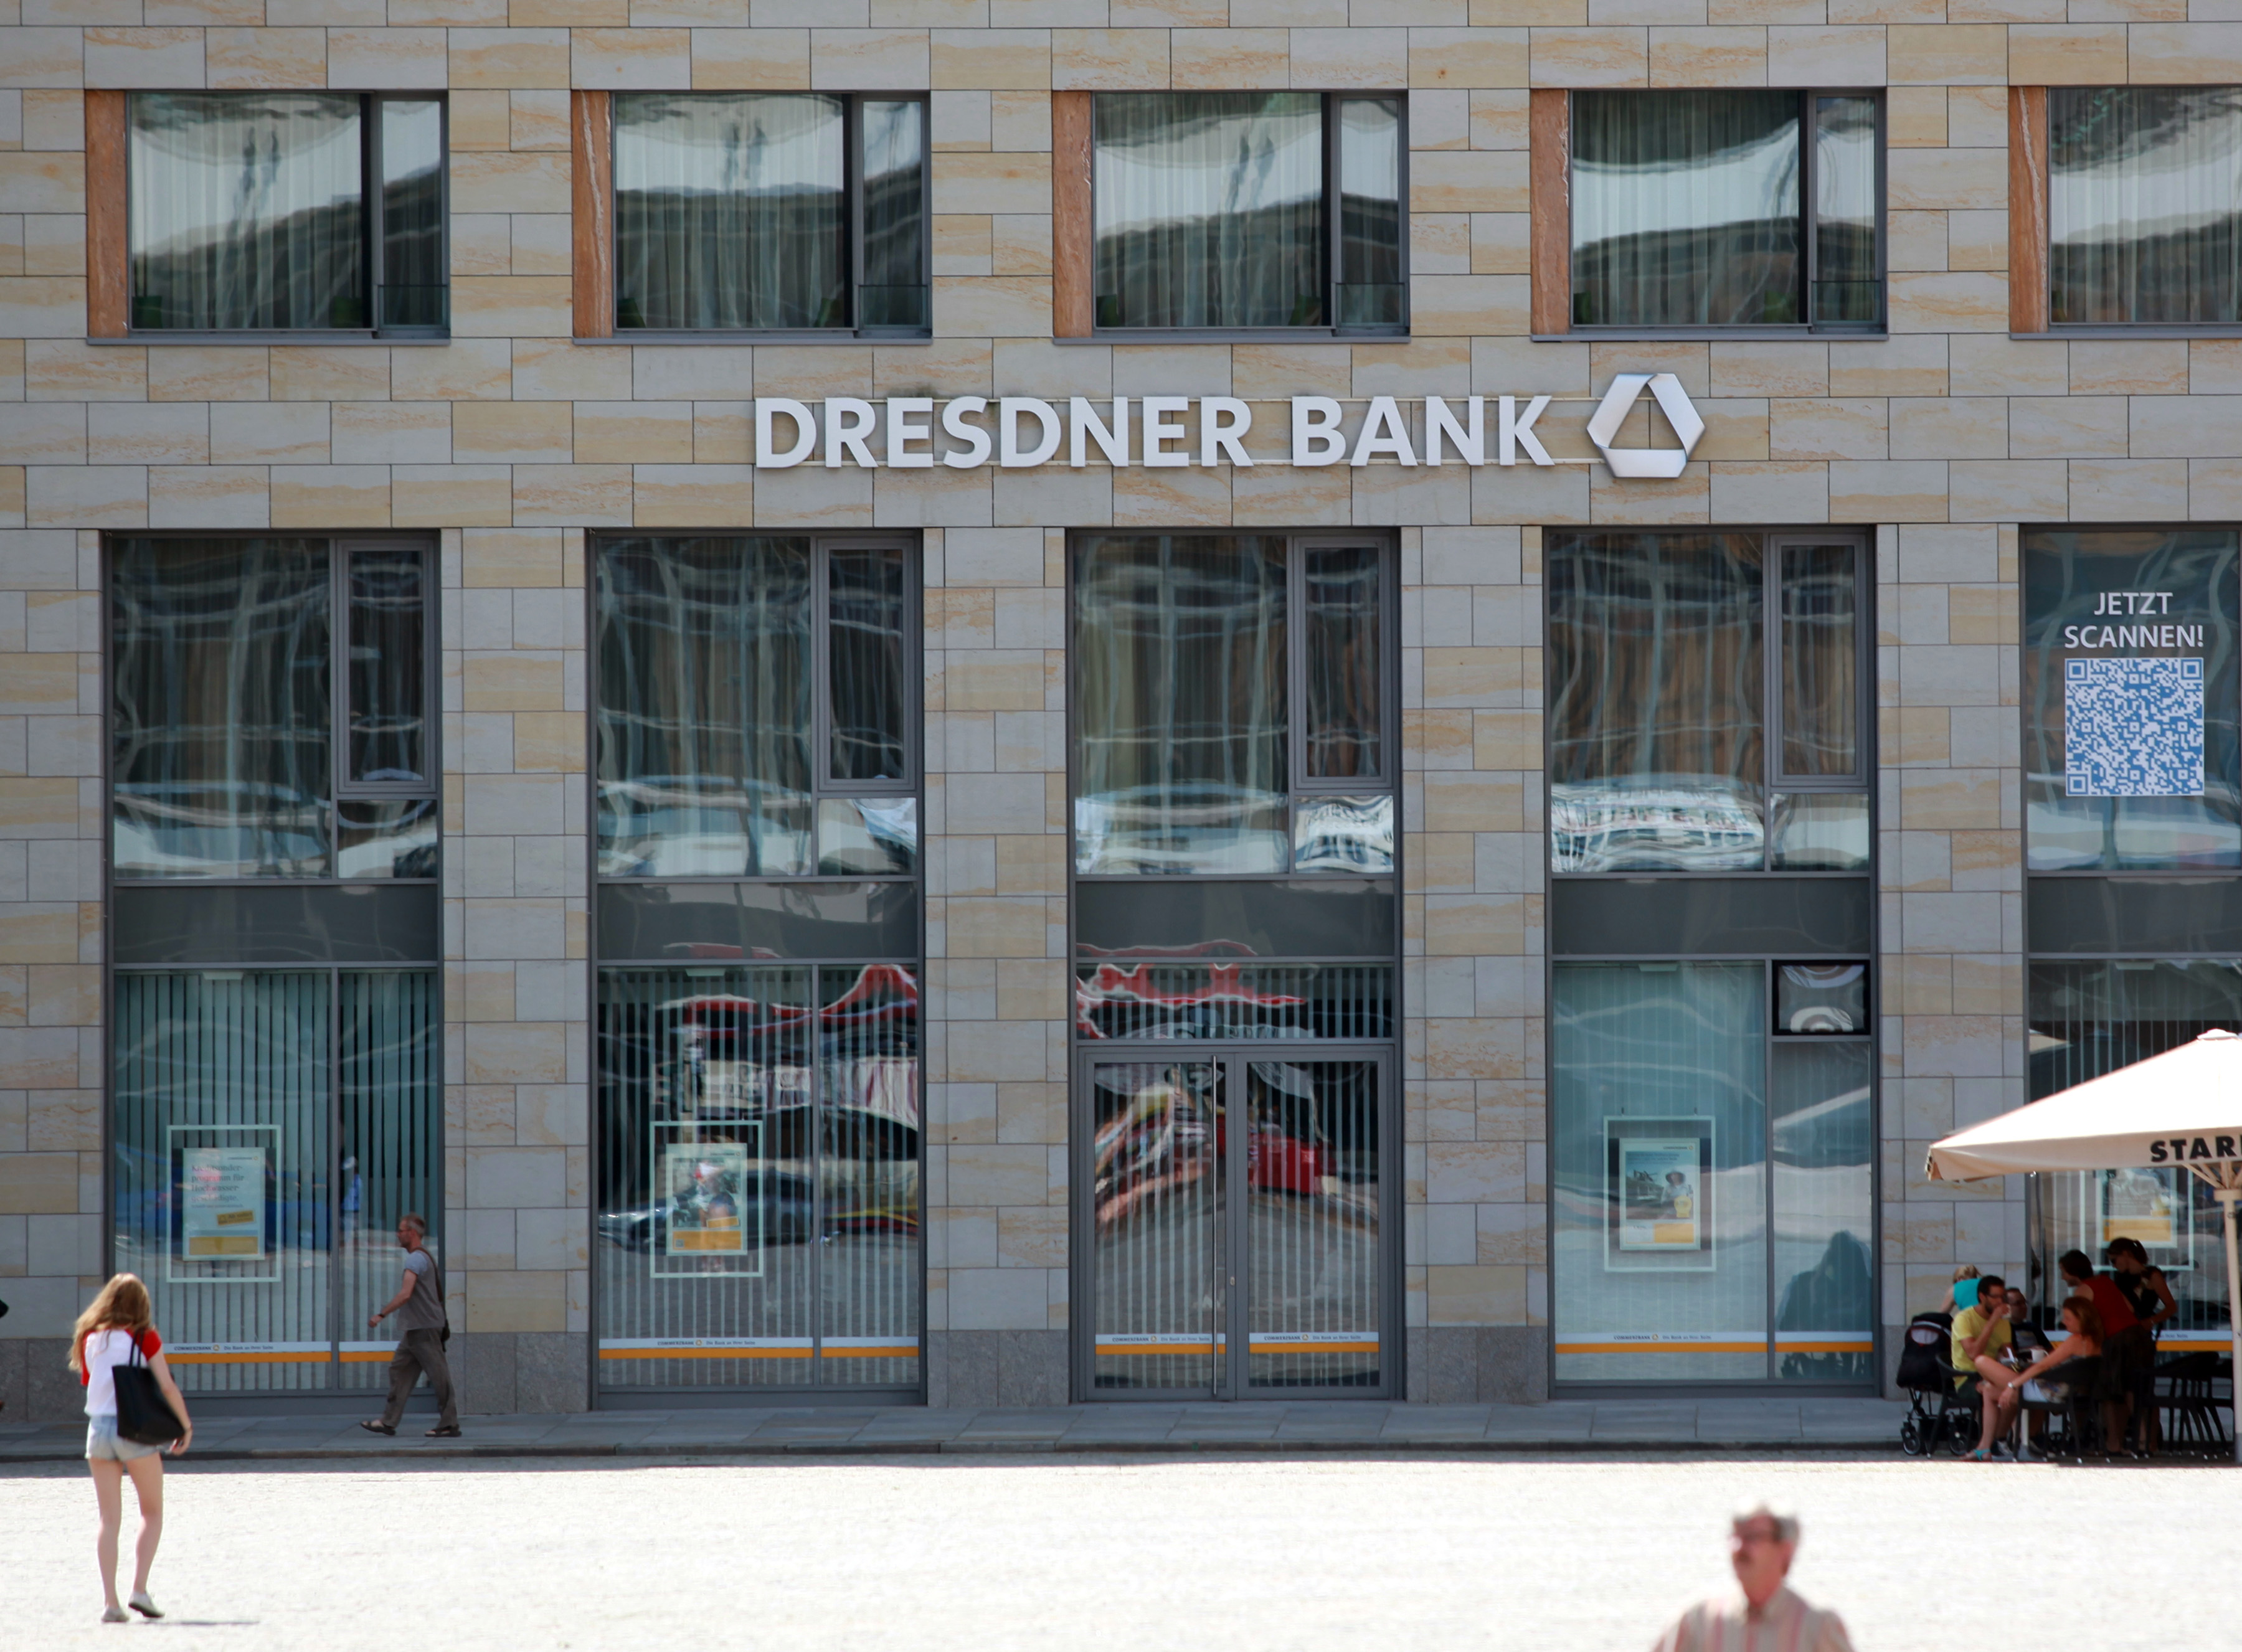 allianz dresden bank Commerzbank shares surged by as much as 19 percent on friday after the german bank sealed its takeover of dresdner bank months ahead of schedule and for less than market participants had feared.